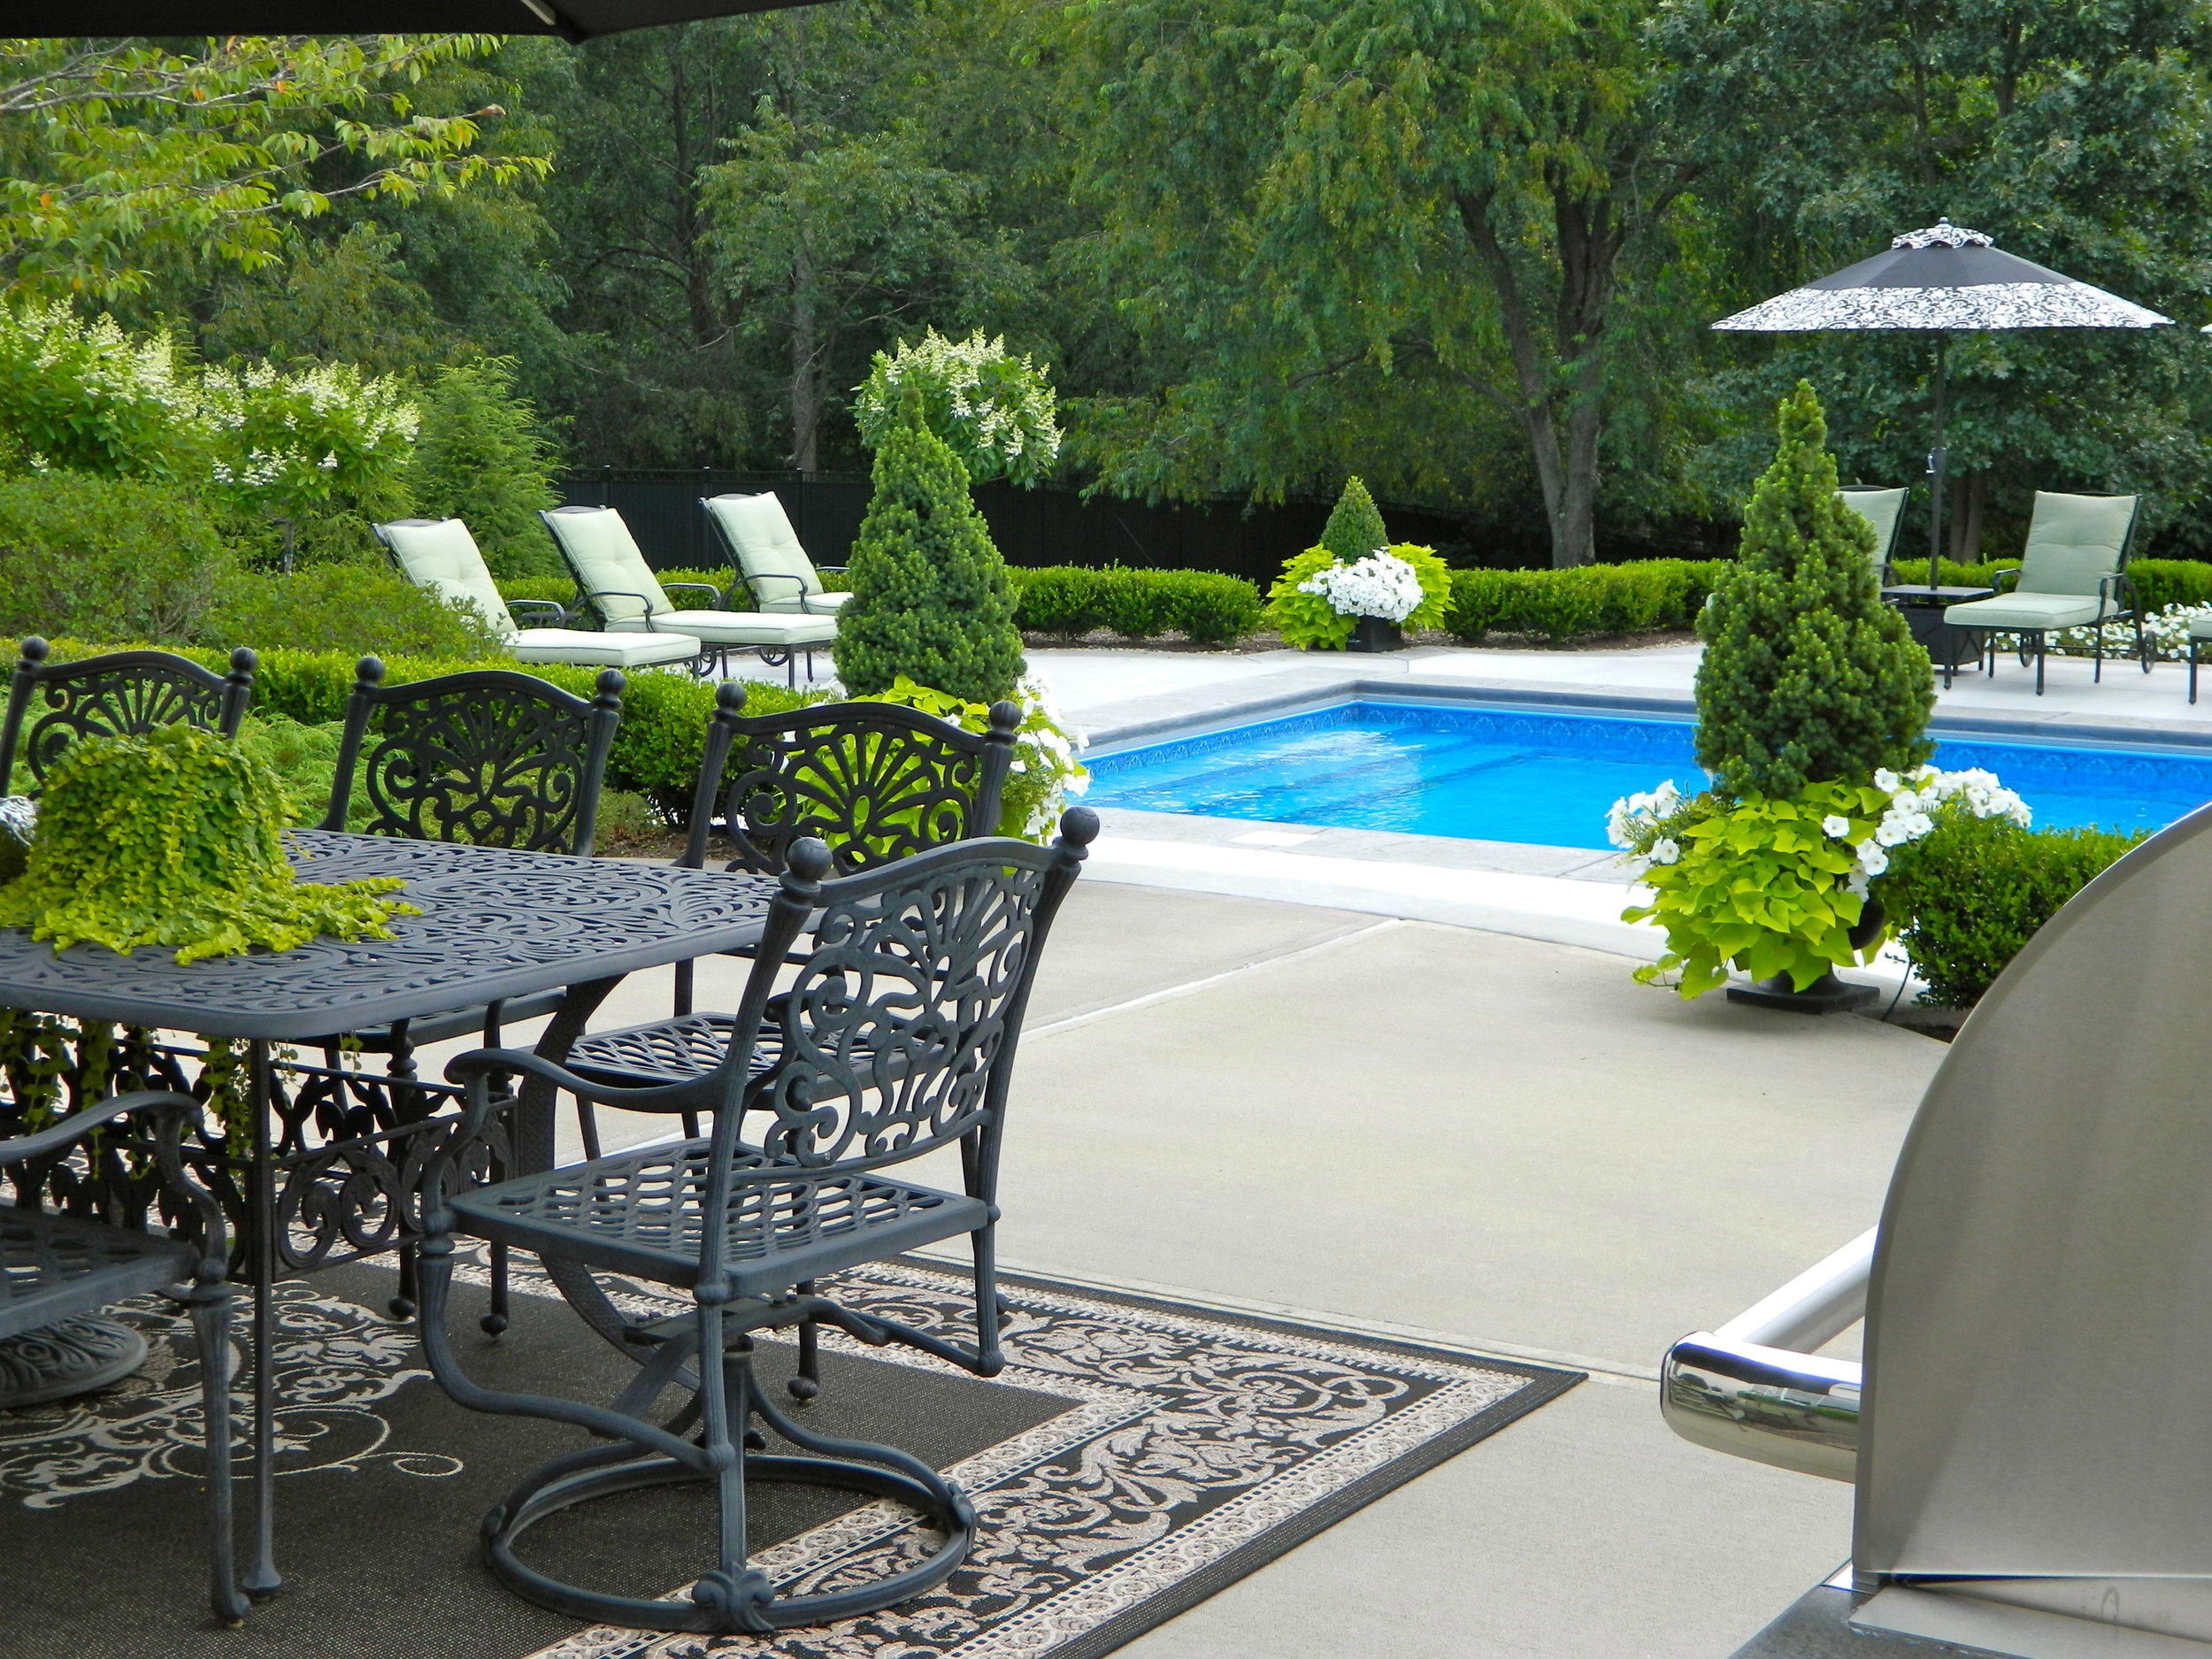 Pittsburgh, PA landscape design and construction